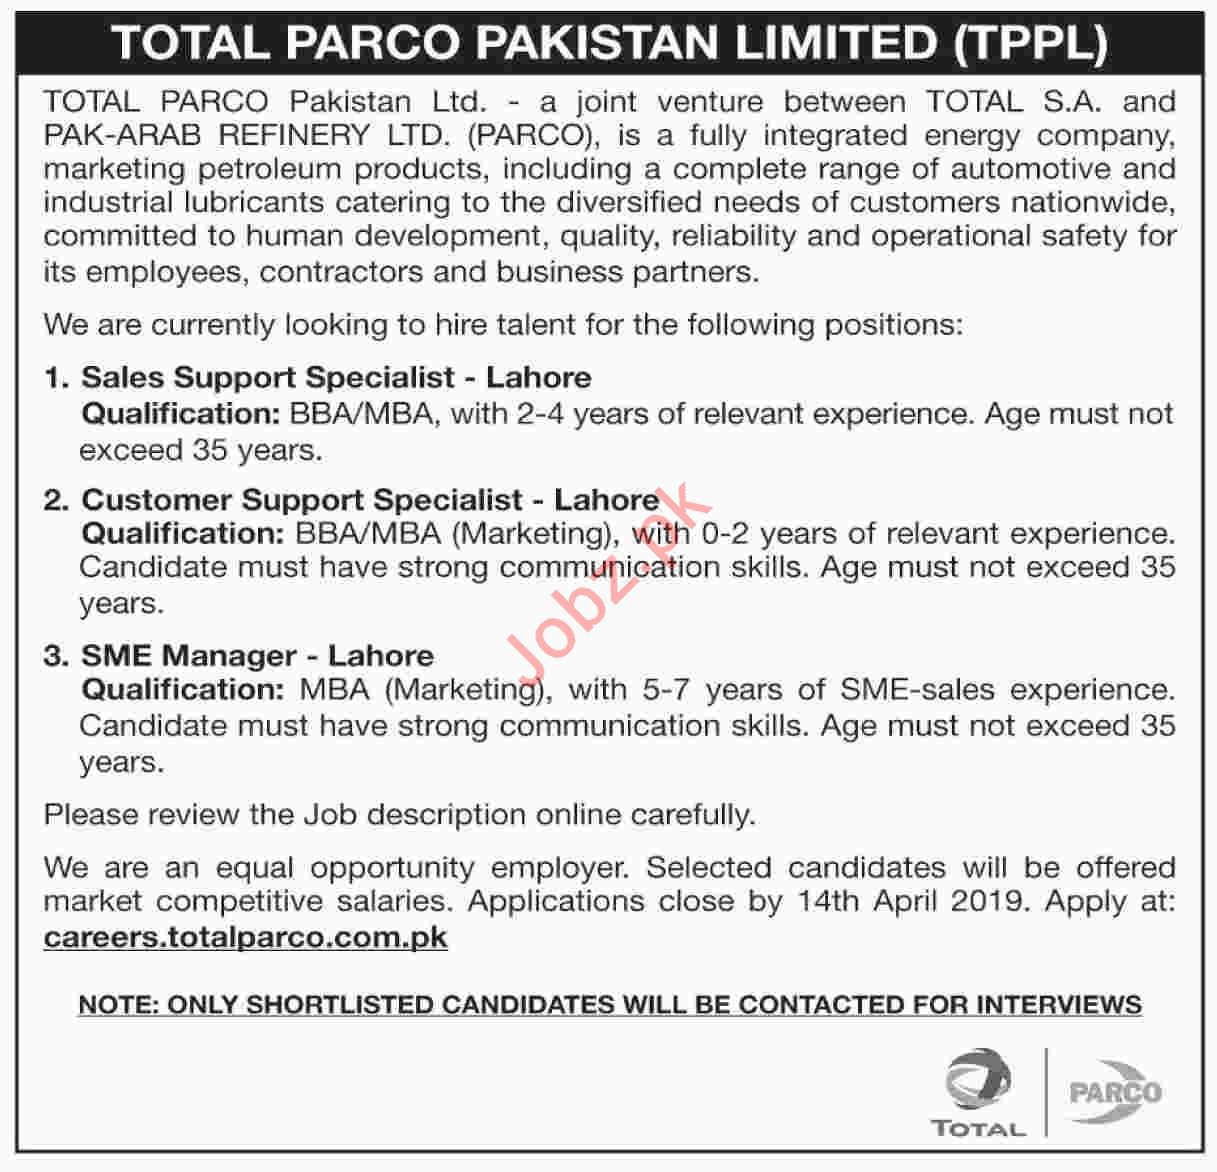 Total PARCO Pakistan Limited TPPL Jobs 2019 in Lahore